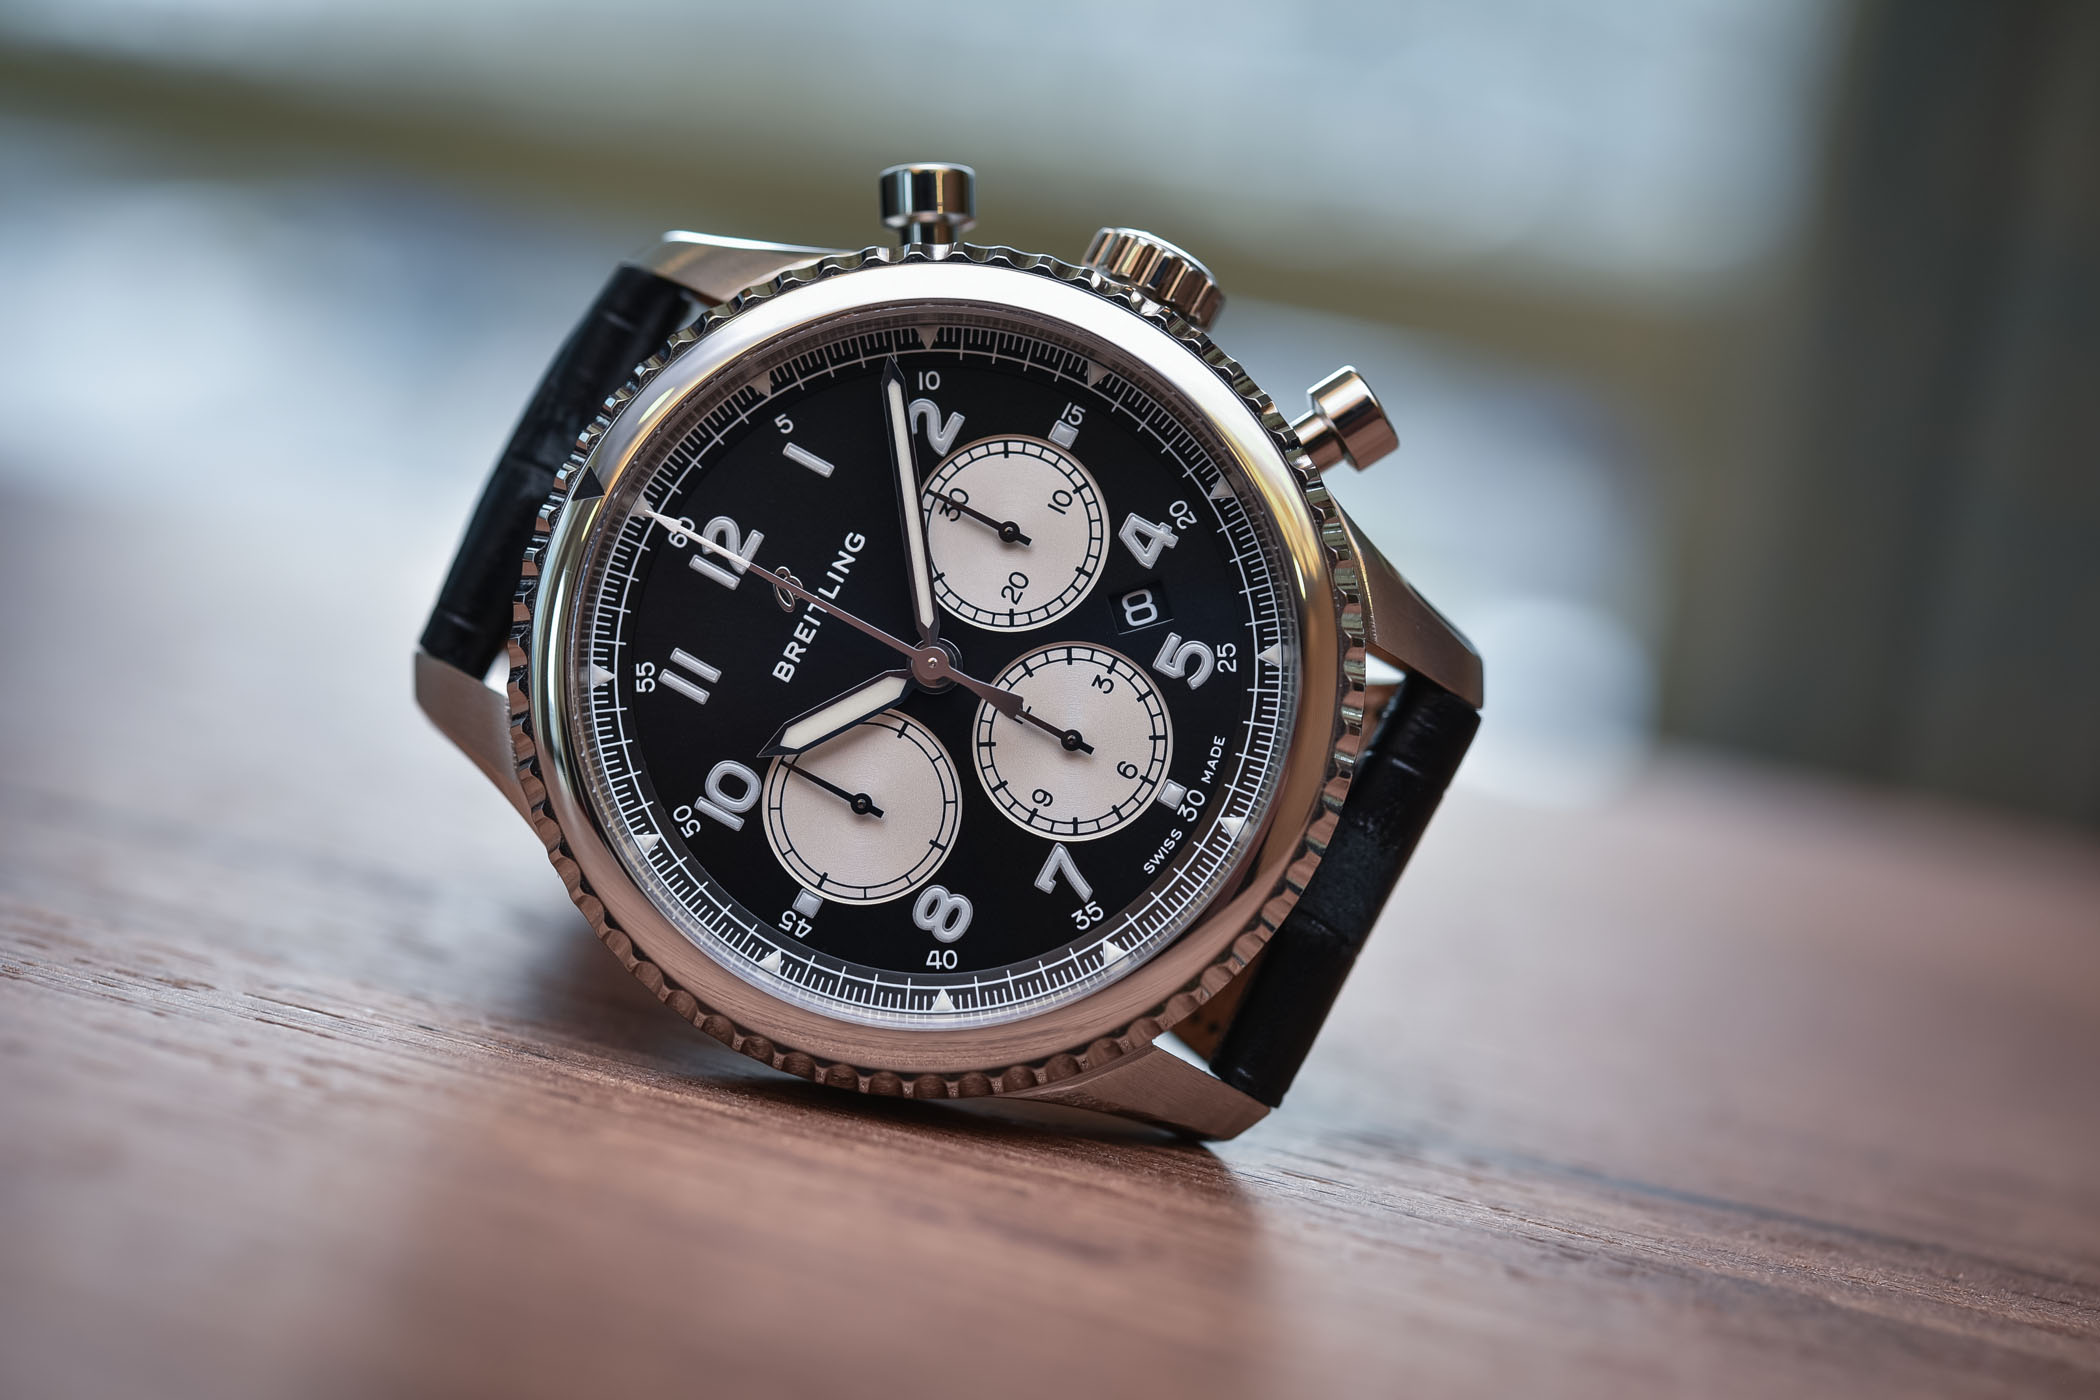 Review Breitling Navitimer 8 B01 Inc Historical Strategical